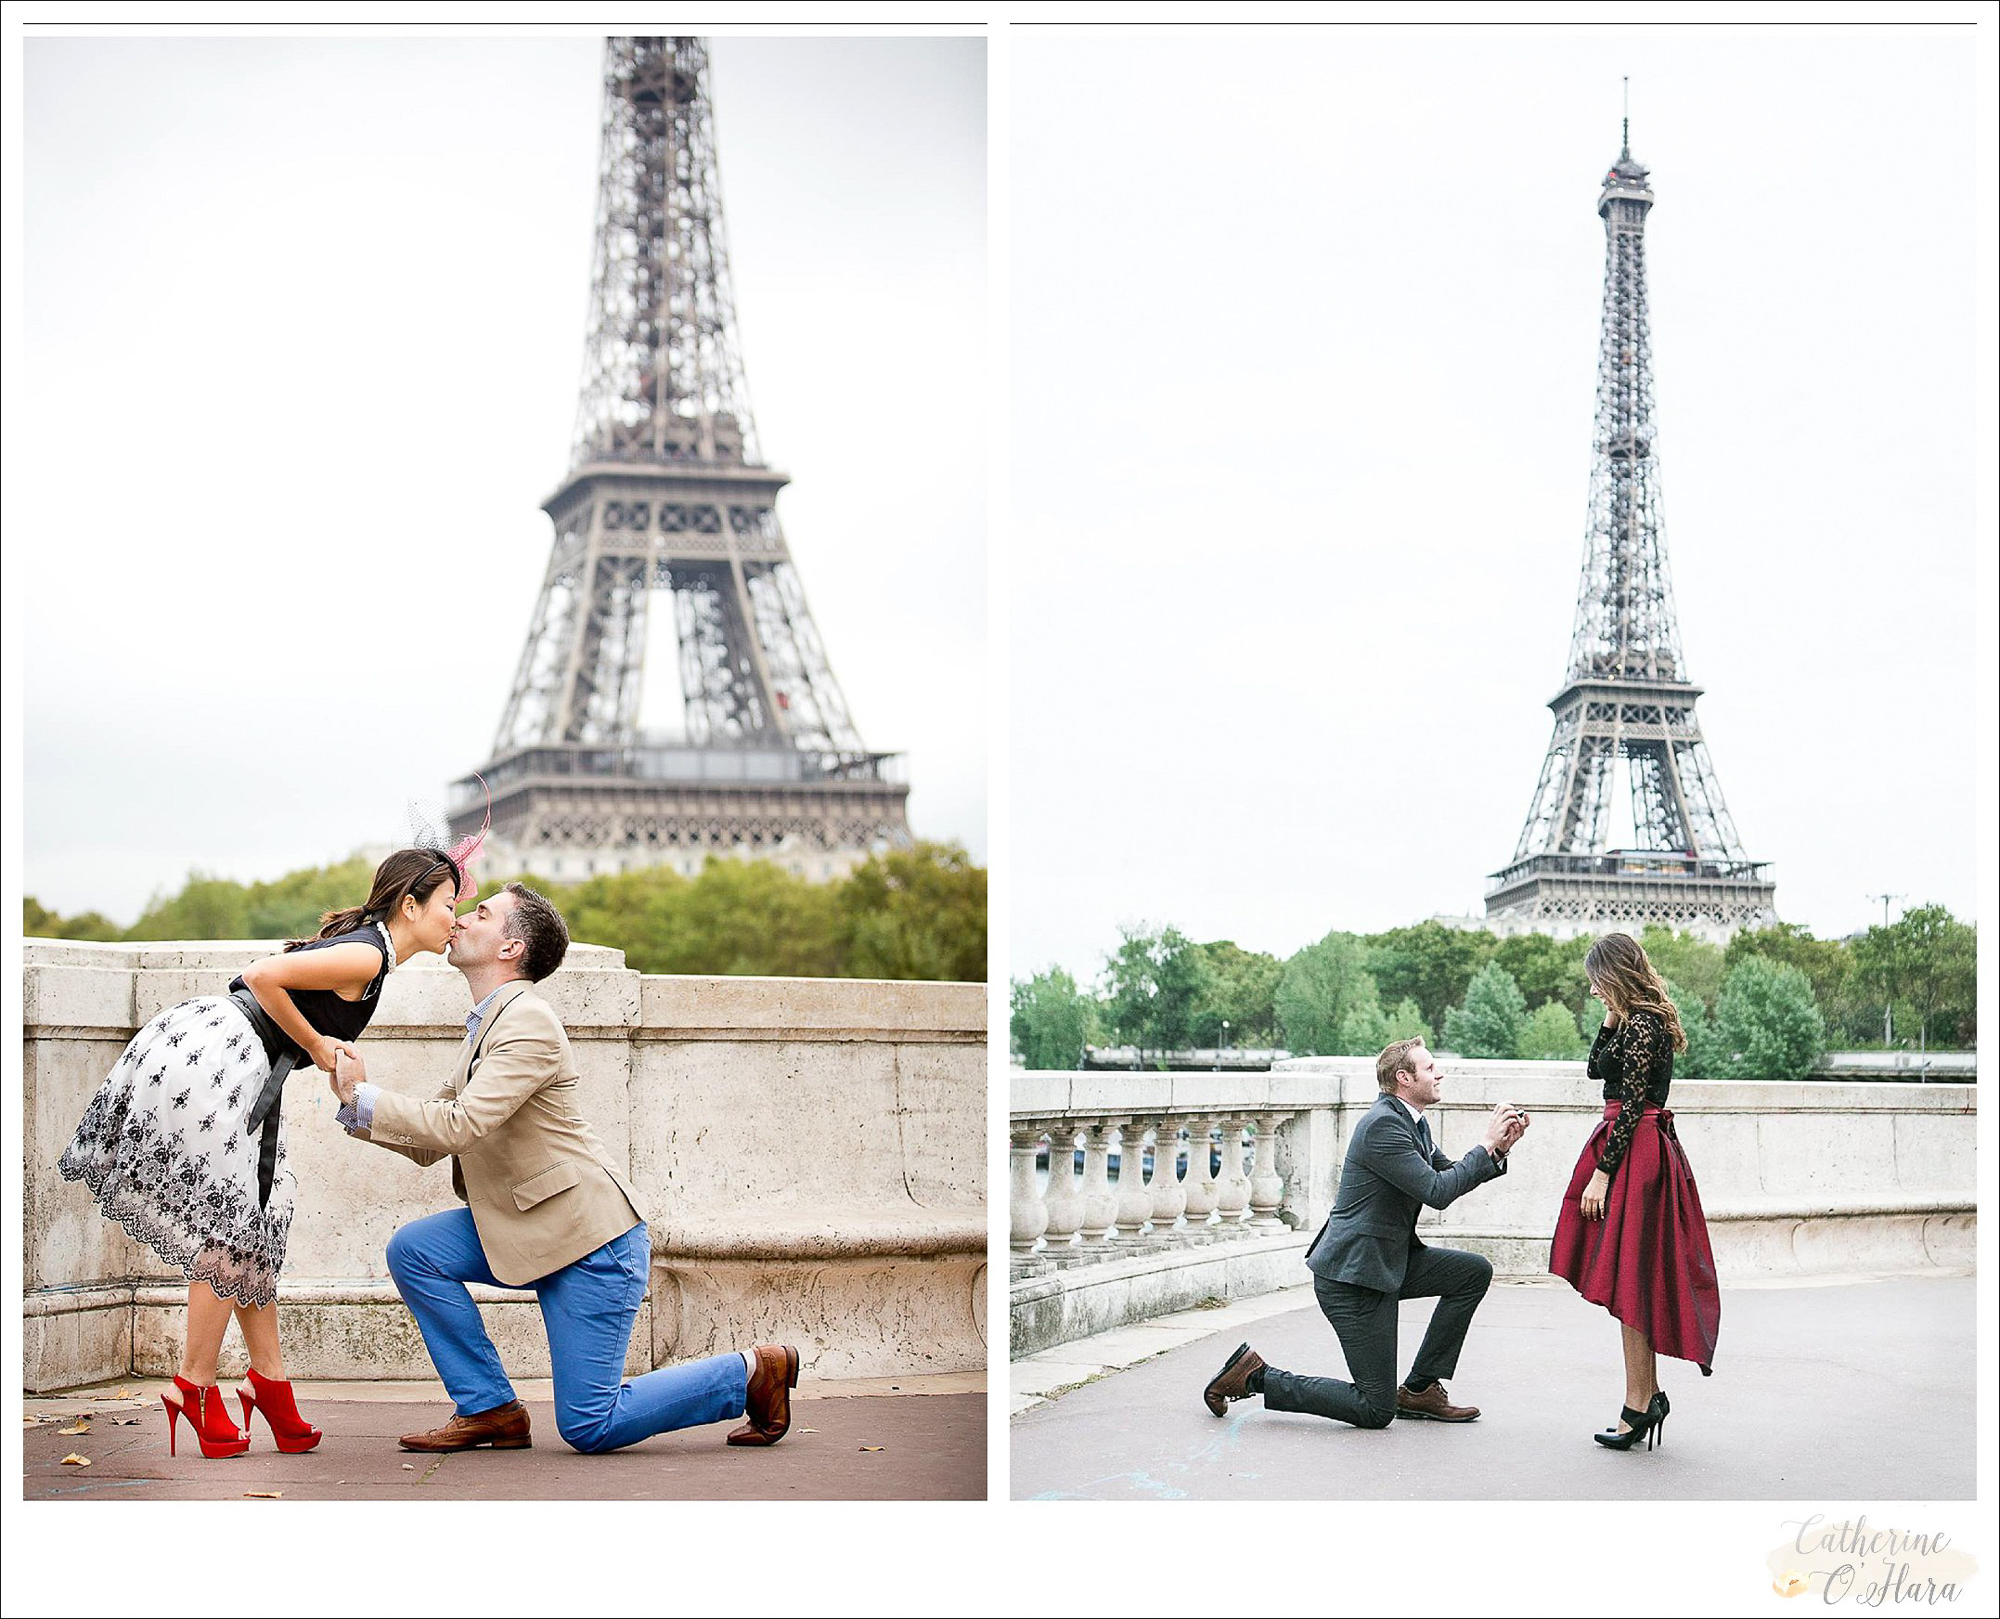 surprise proposal engagement photographer paris france-51.jpg